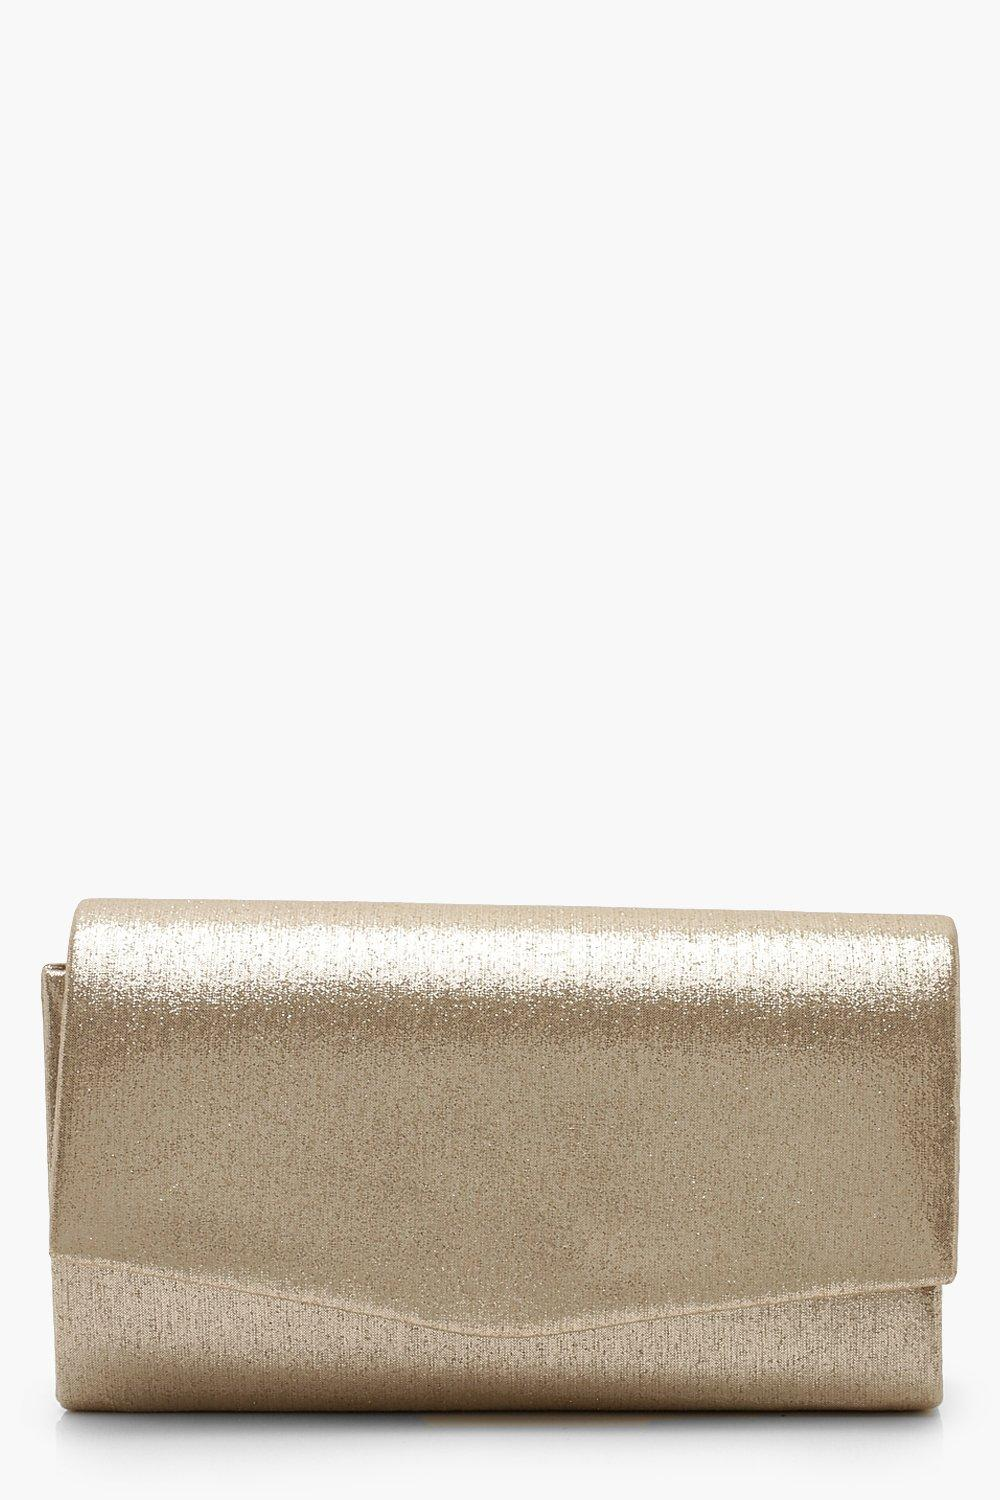 Structured Metallic Clutch & Chain